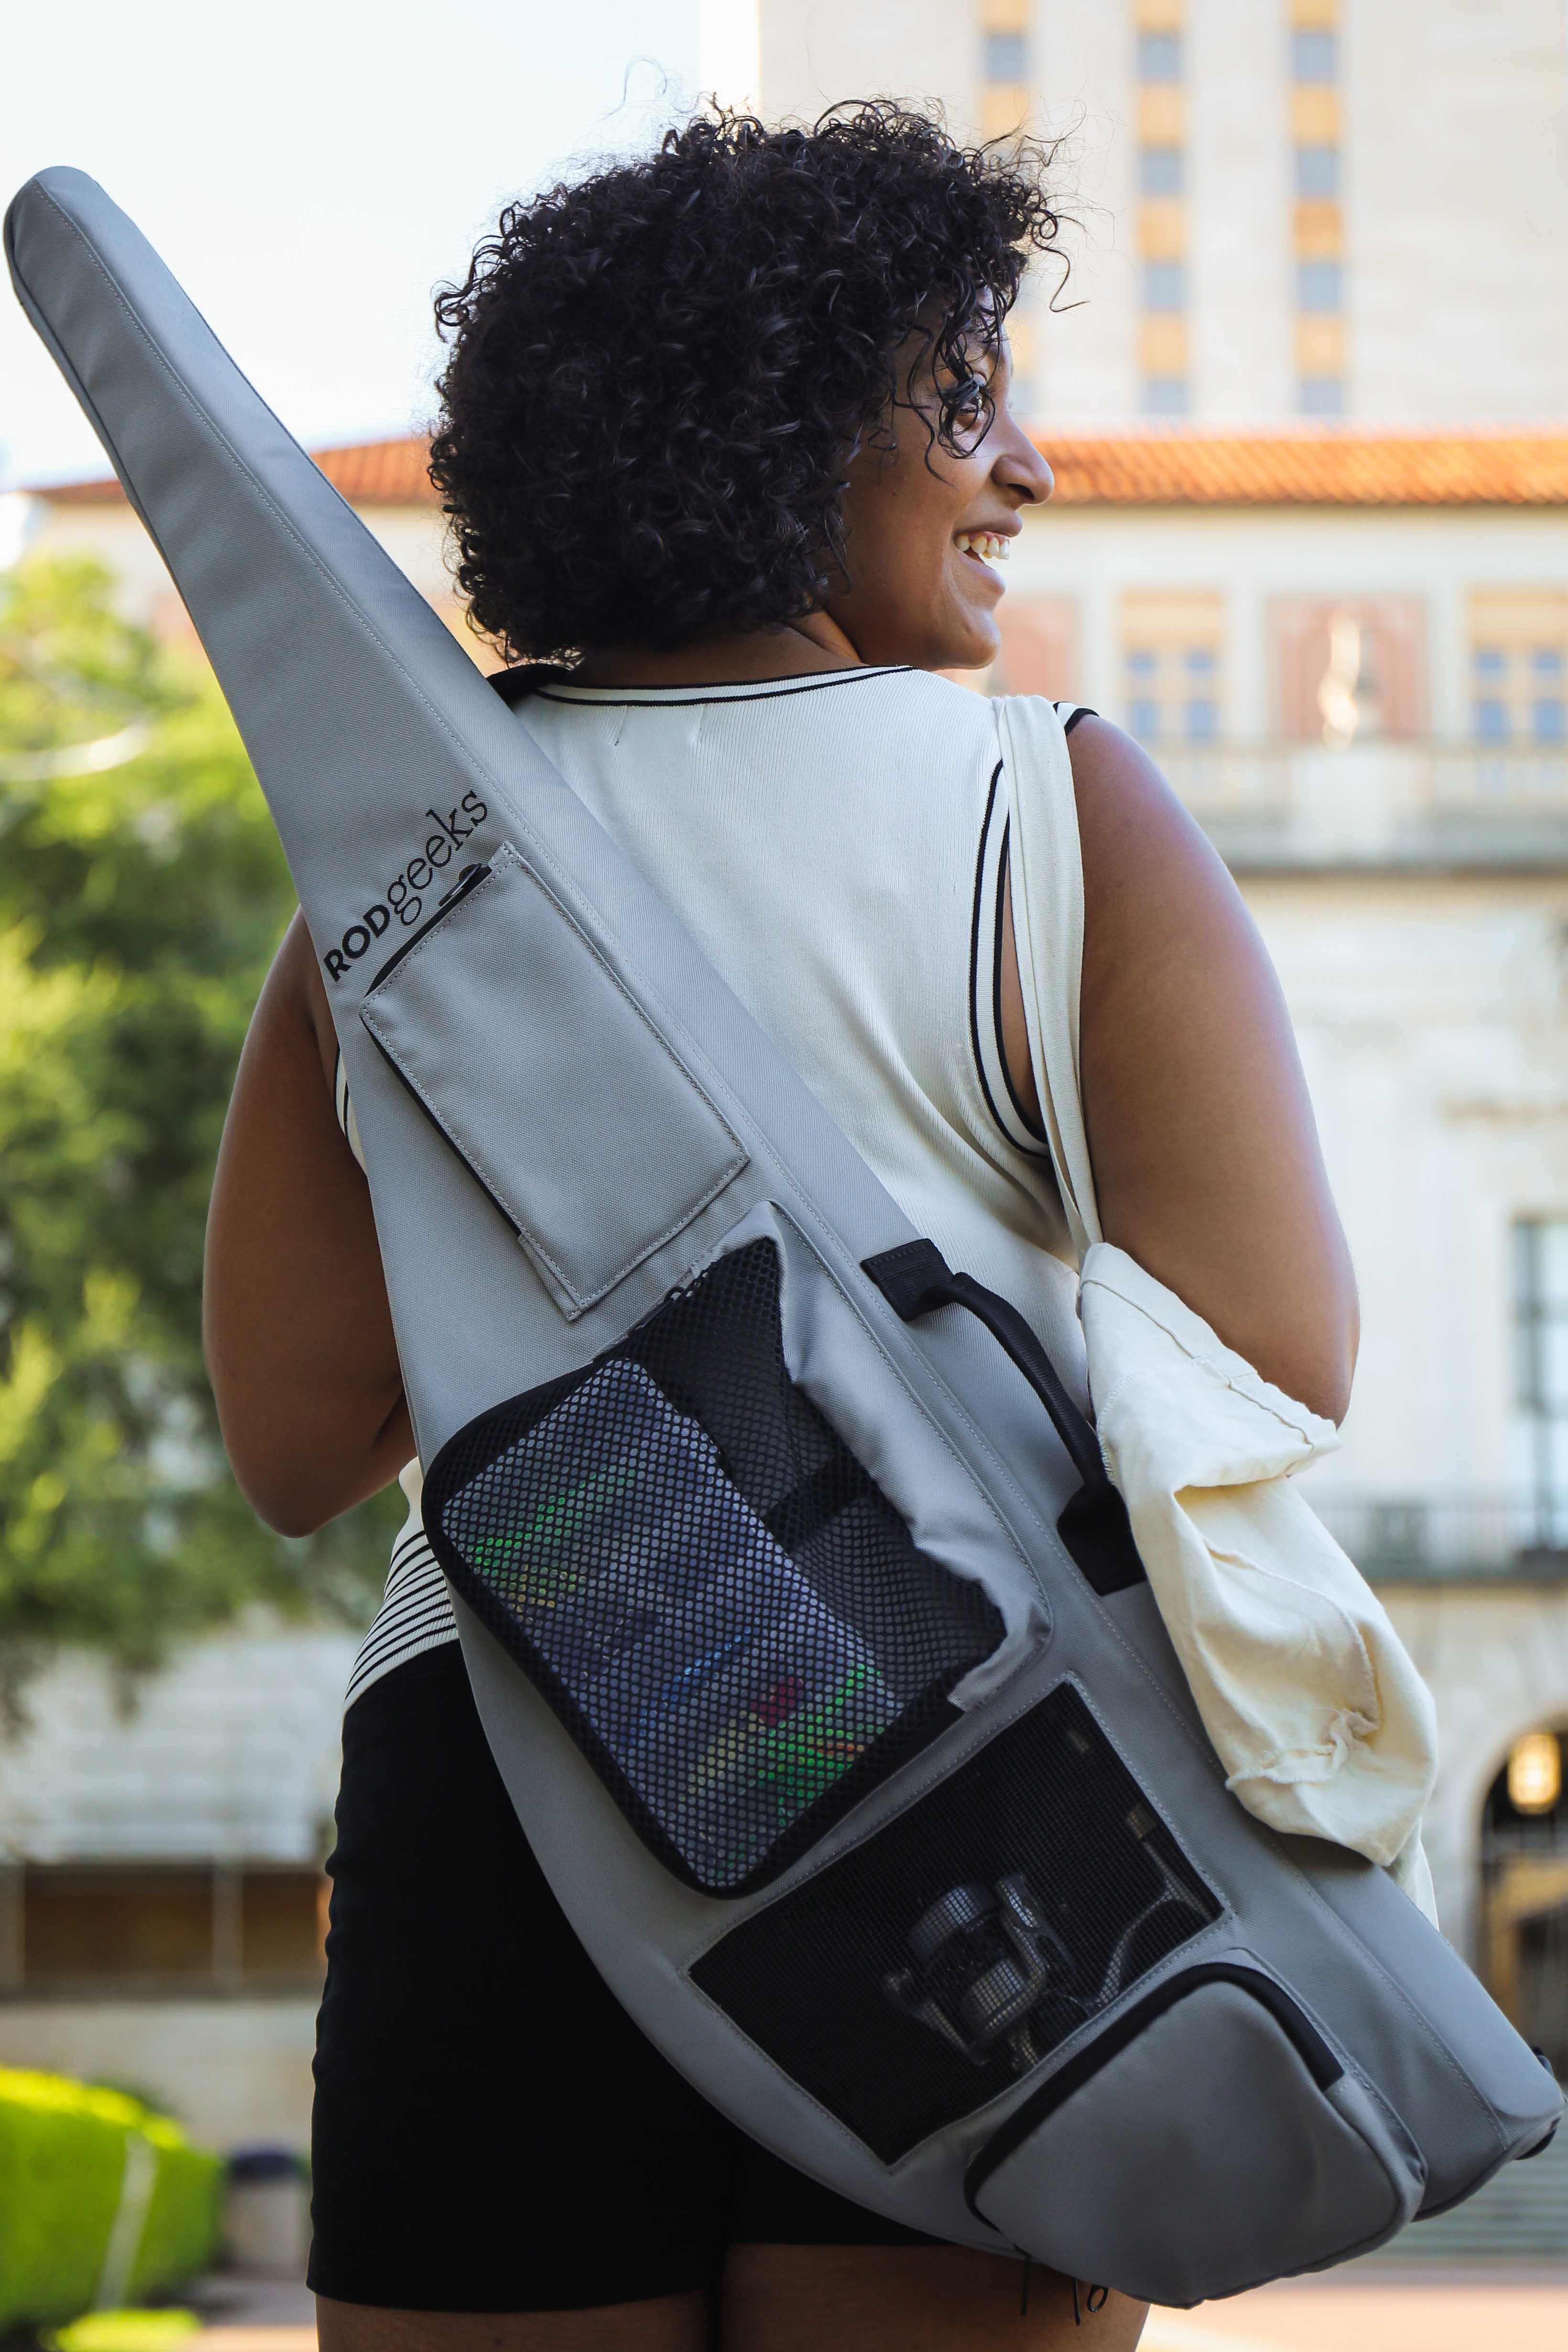 Woman carrying RG-42 travel fishing rod on her back